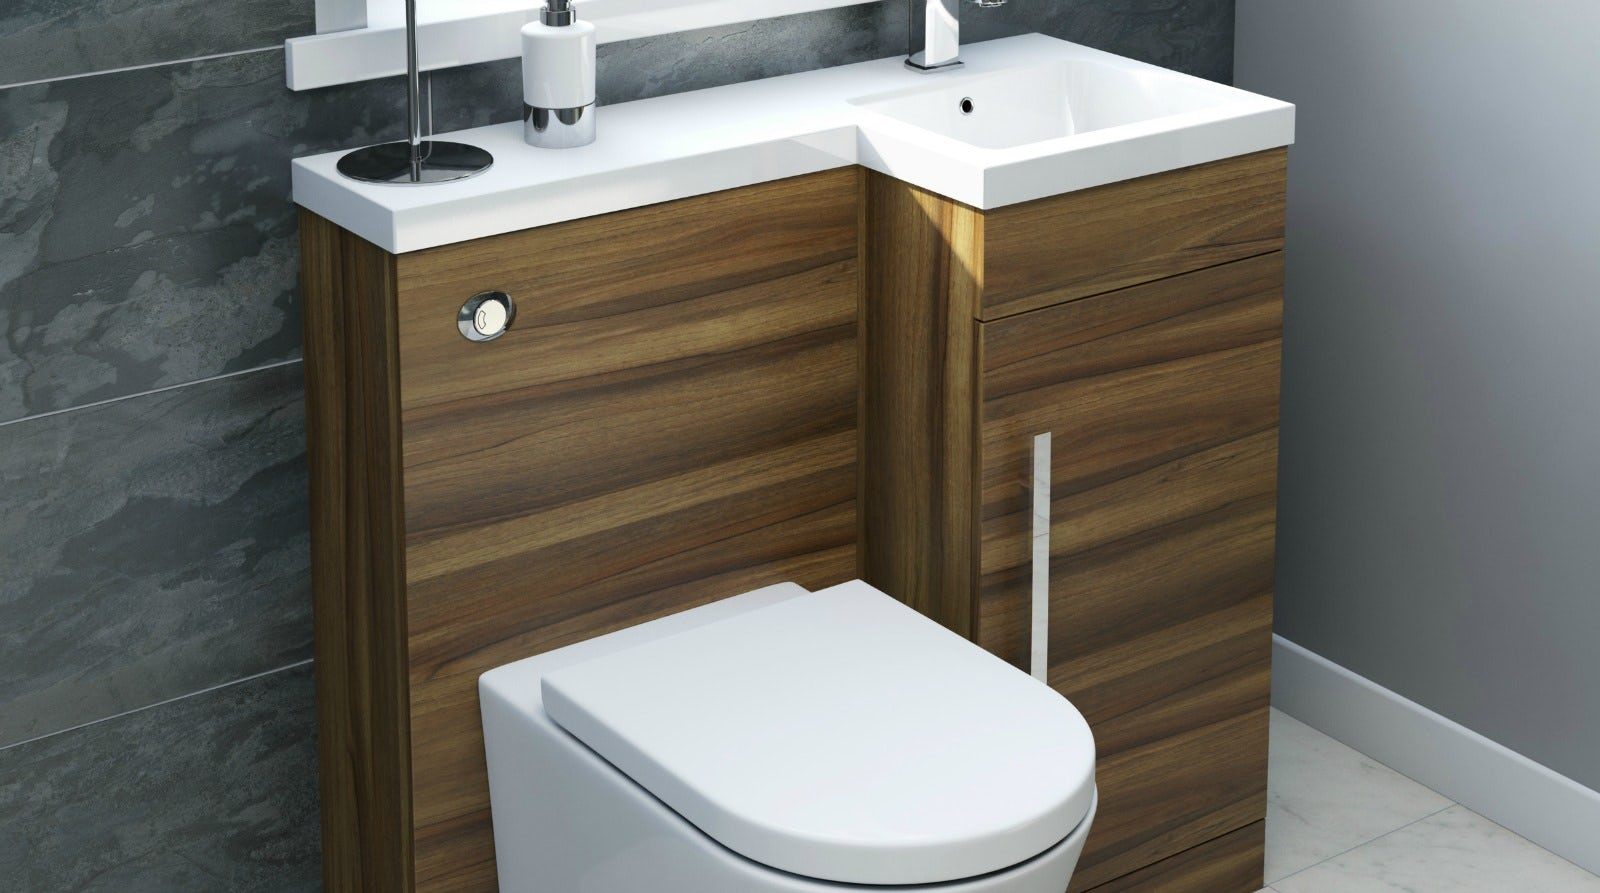 Toilet and basin unit buying guide for Toilet furniture cabinet